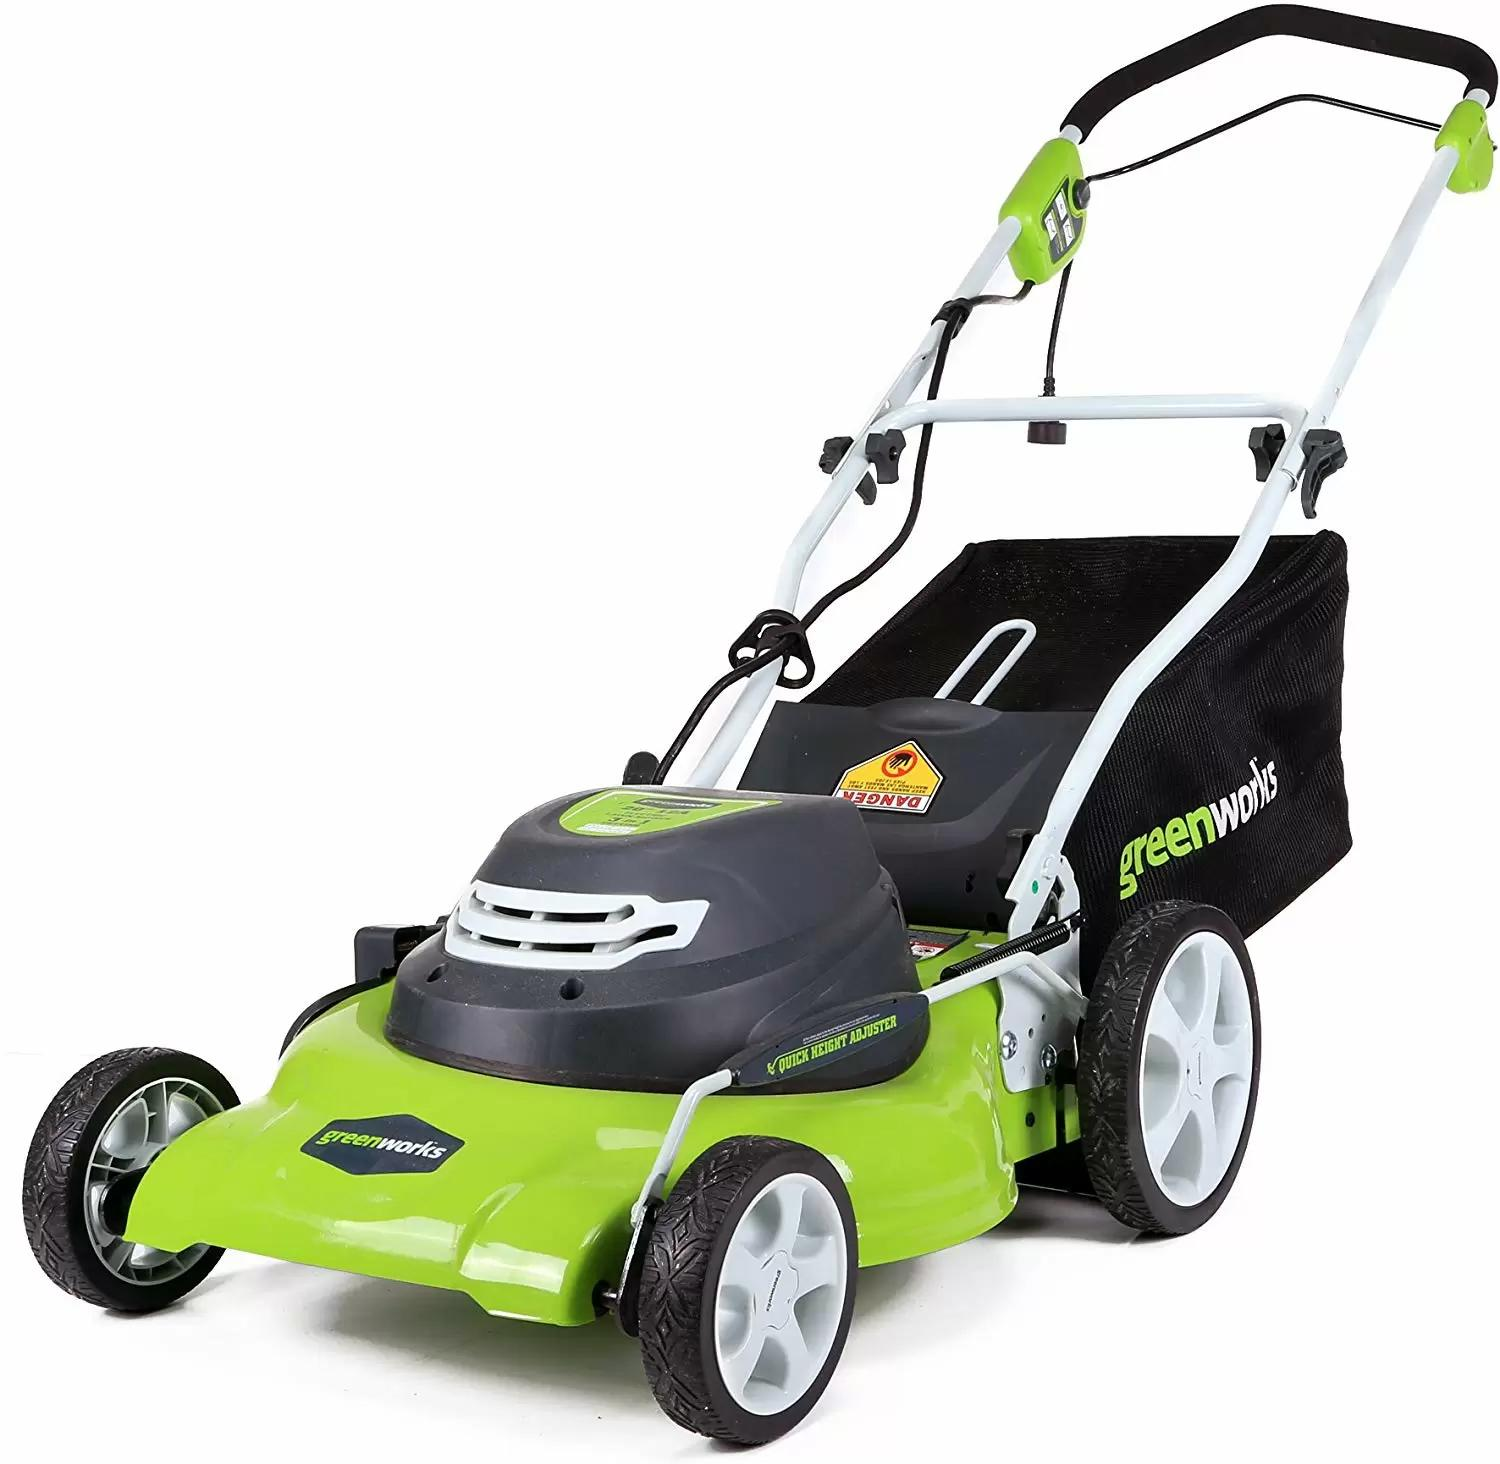 Greenworks 20in 3-in-1 12A Electric Lawn Mower for $134.99 Shipped